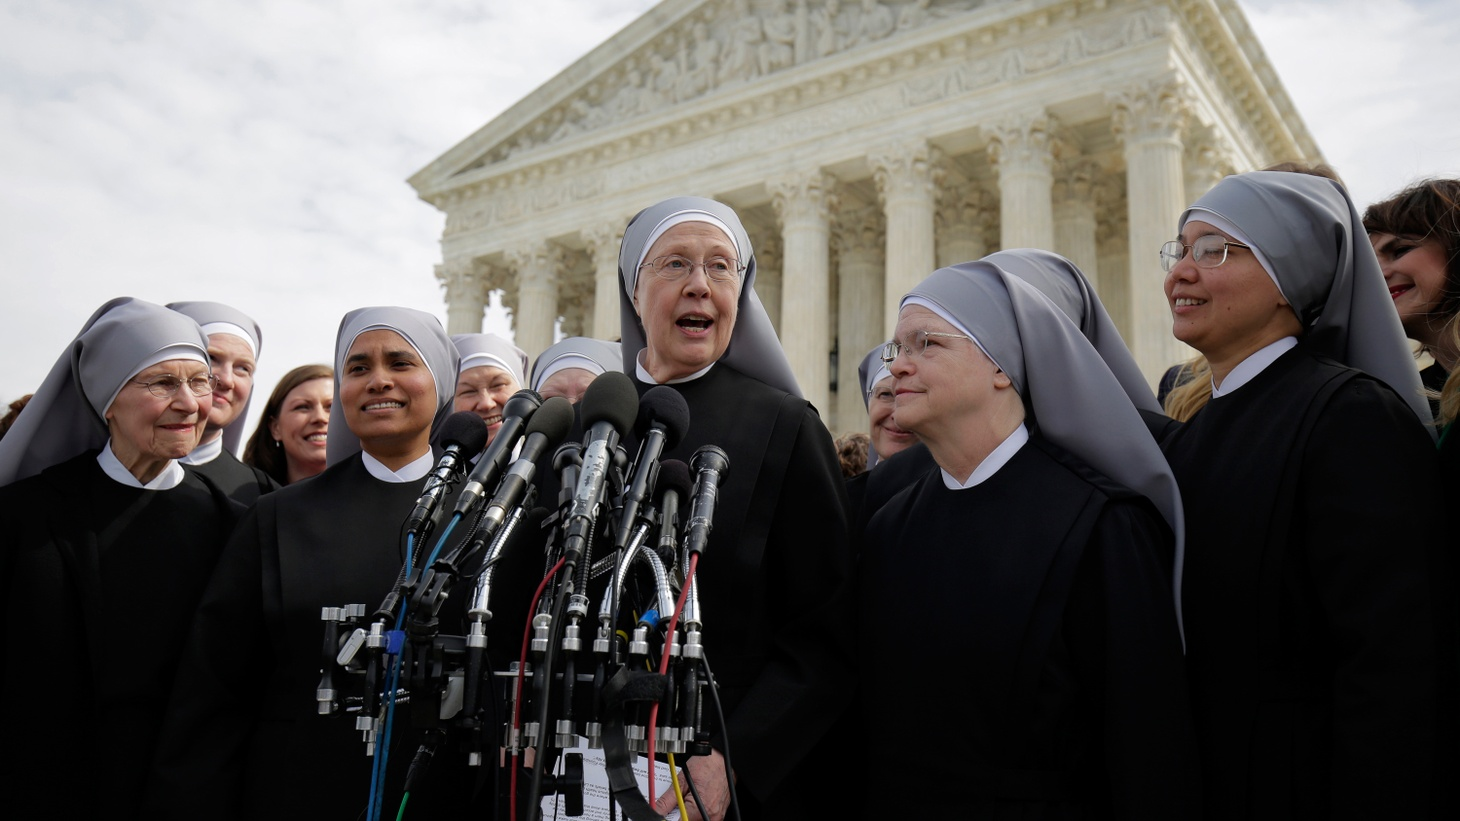 The Supreme Court sent a case about contraception back to the lower courts Monday, avoiding a deadlock, but highlighting how the vacant ninth seat is becoming an issue as Congress continues to refuse to hold a nomination hearing to fill it.